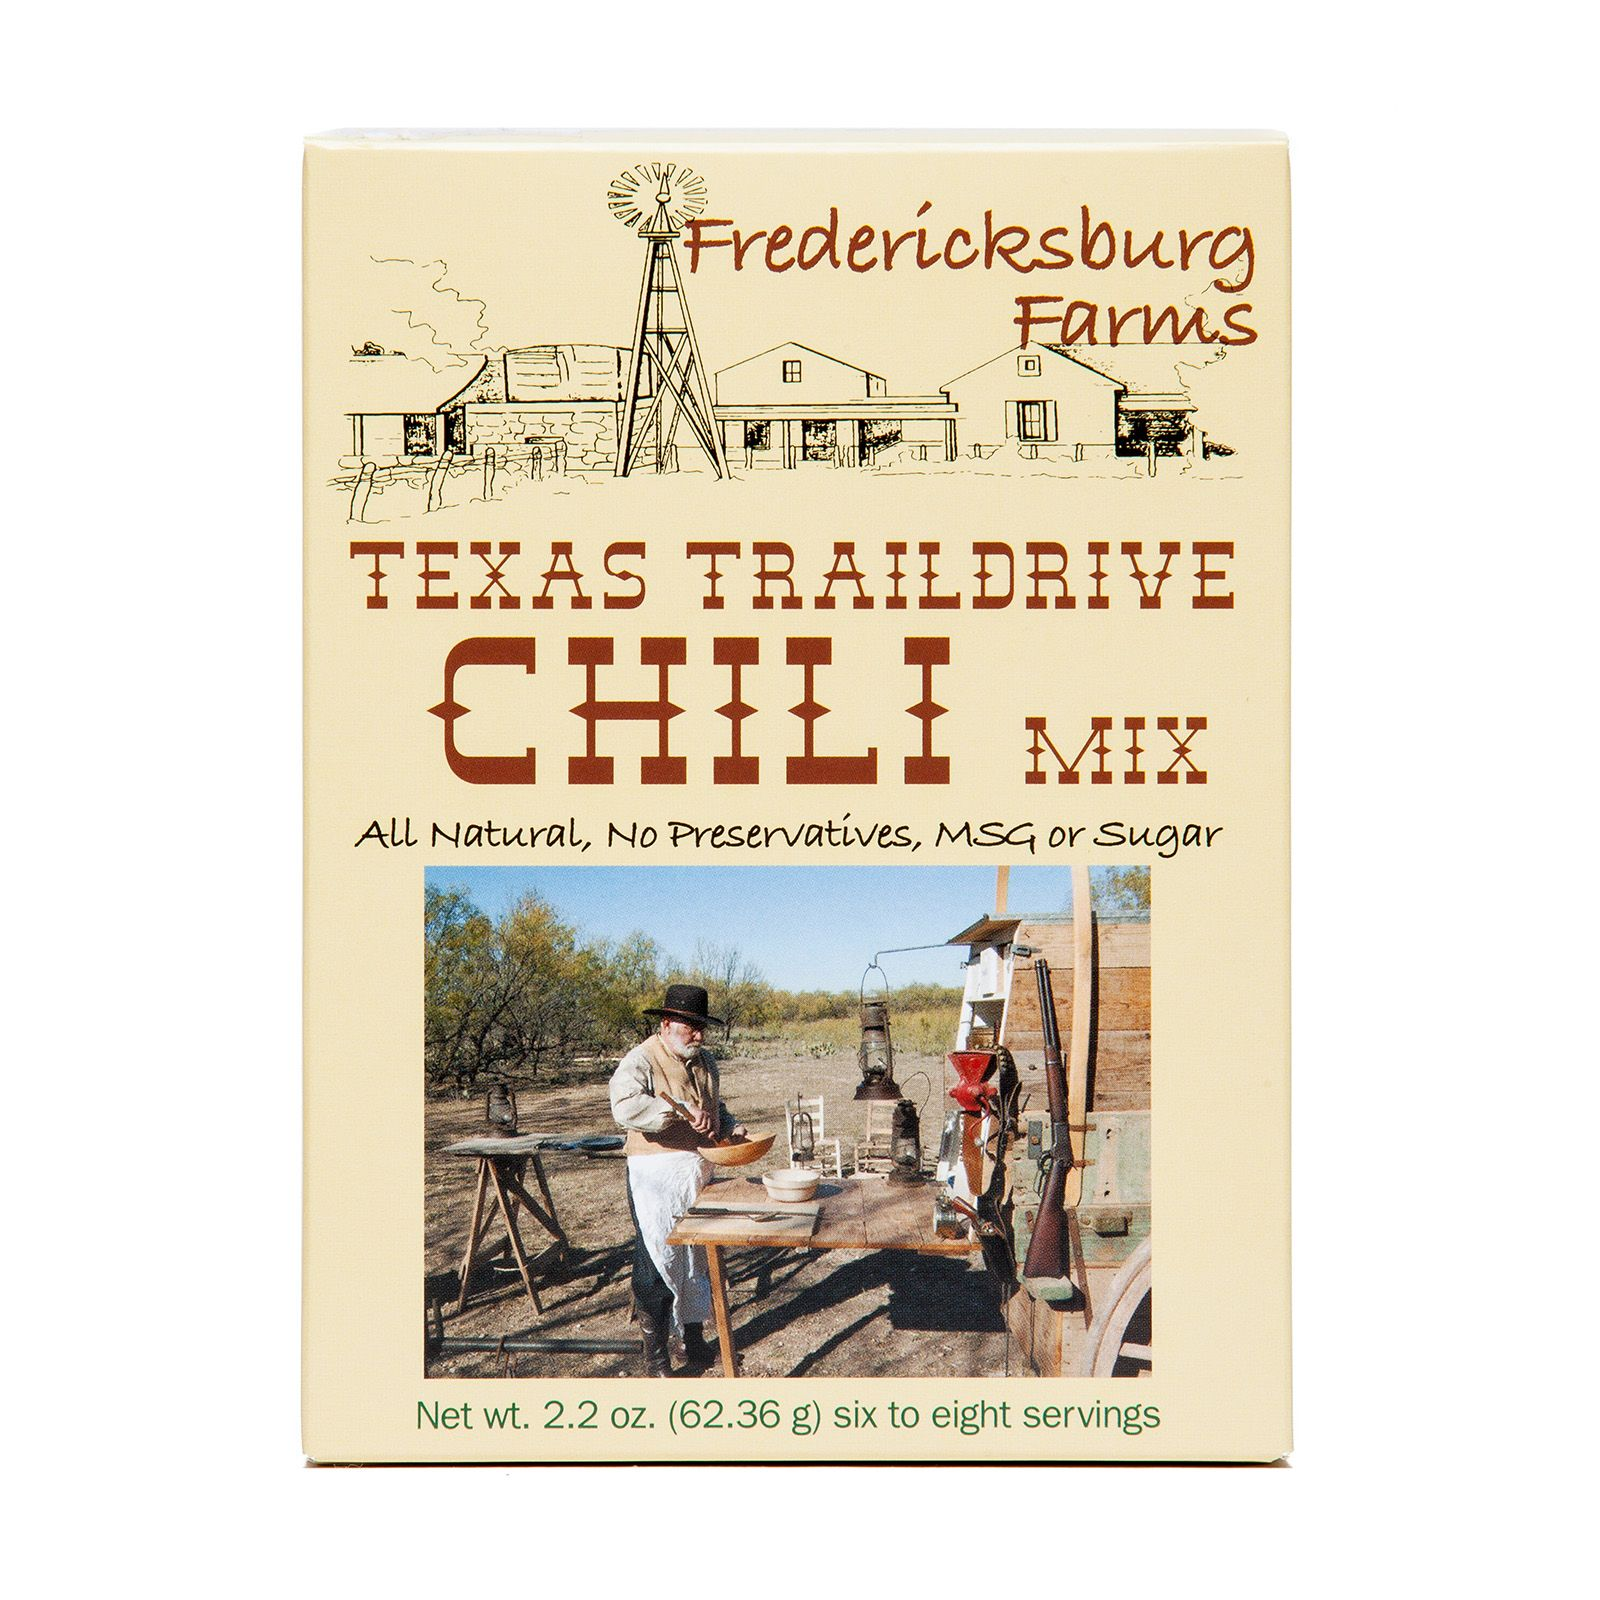 Fredericksburg Farms Texas Trail Drive Chili Mix